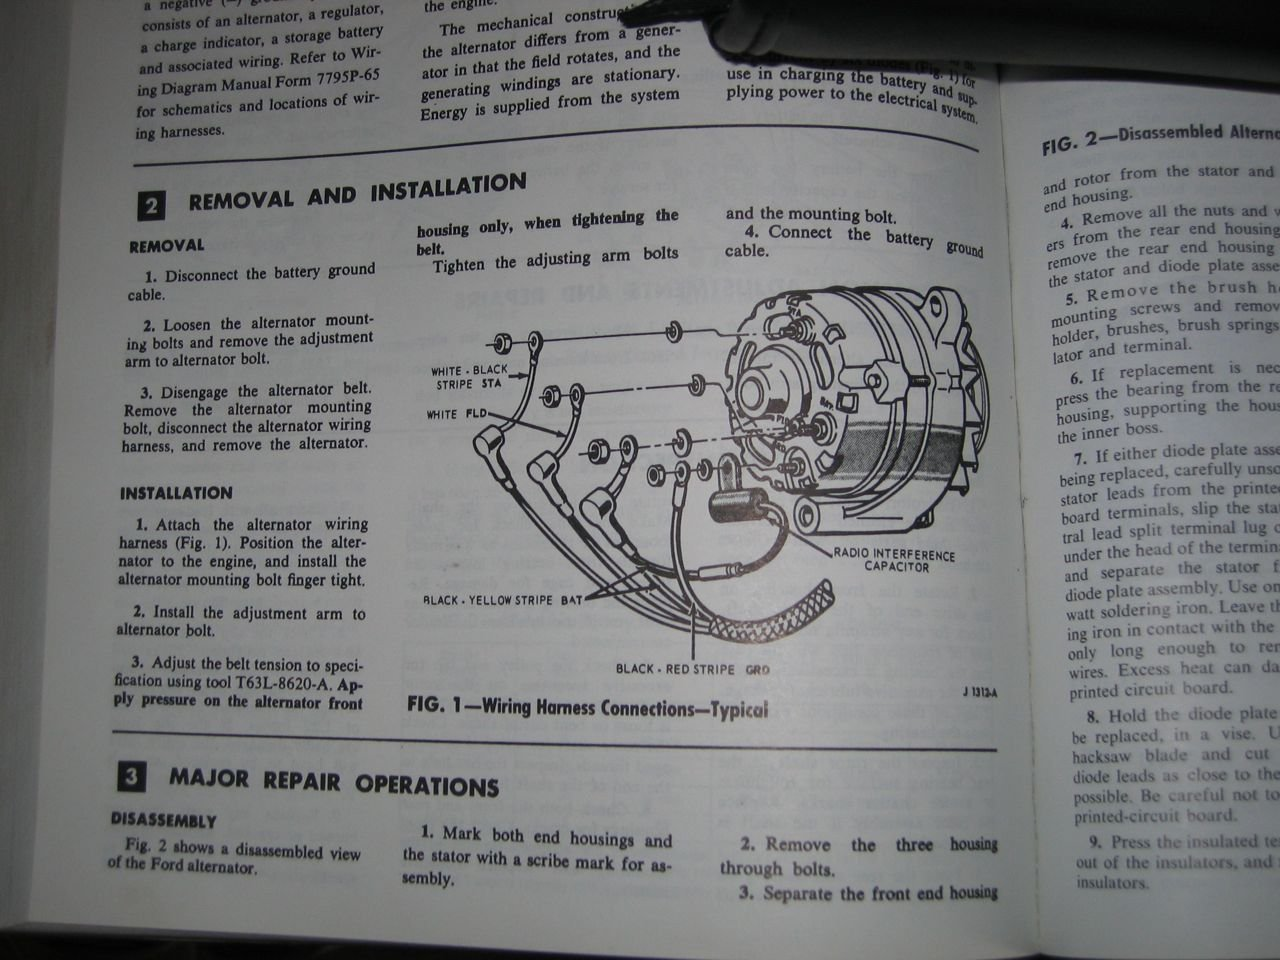 93328d1268767403 1966 mustang alternator wiring img_0749 1966 mustang alternator wiring ford mustang forum 66 mustang alternator wiring diagram at couponss.co